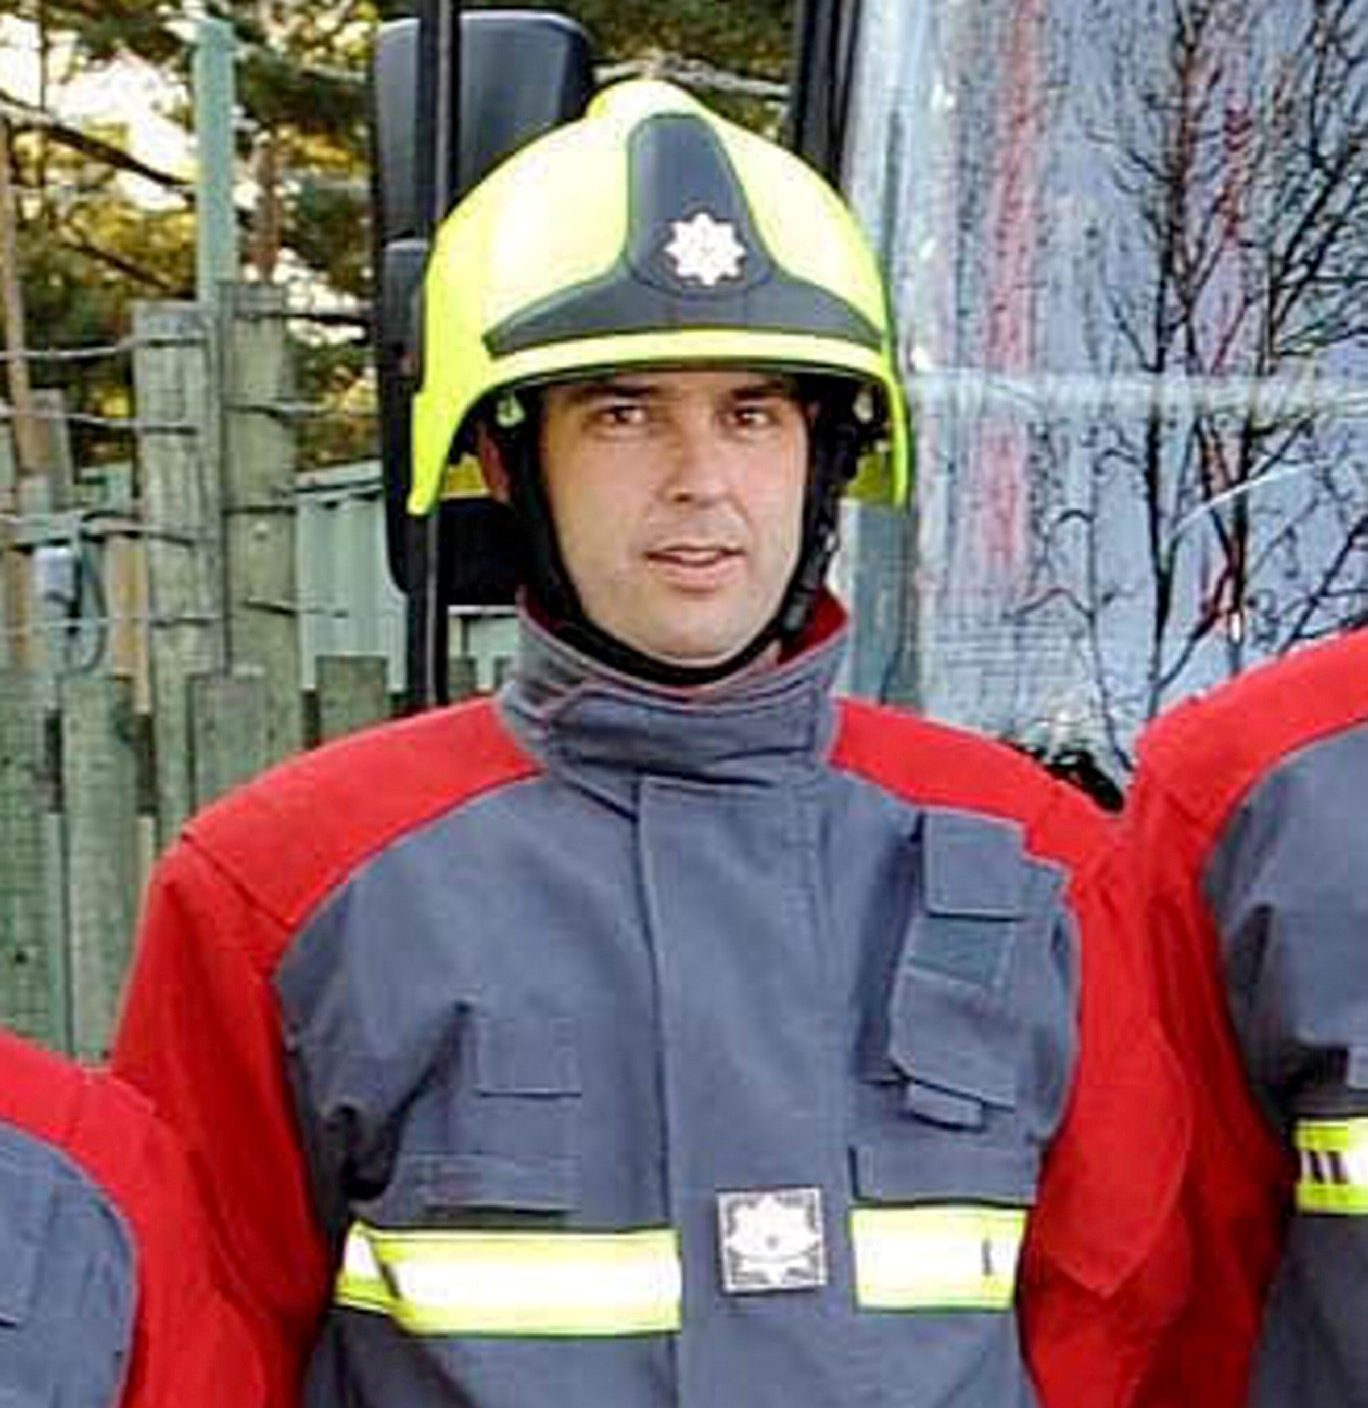 Paul Oulton from the Delabole Cornwall Rescue and Fire Service in Delabole in 2010. See SWNS story SWPLfire; A drunk firefighter died in a chip pan blaze at his home after a night out at the pub, an inquest heard. Off duty Paul Oulton, 43, was discovered by colleagues who were called to the property following an emergency call from a neighbour. Paul, who was a retained firefighter at Launceston Community Fire Station in Cornwall, had drunk seven pints of lager and three or four Jack Daniels and Cokes. An inquest in Truro, Cornwall, heard Paul was in ???good spirits and looking forward to the future??? on the night of his death.